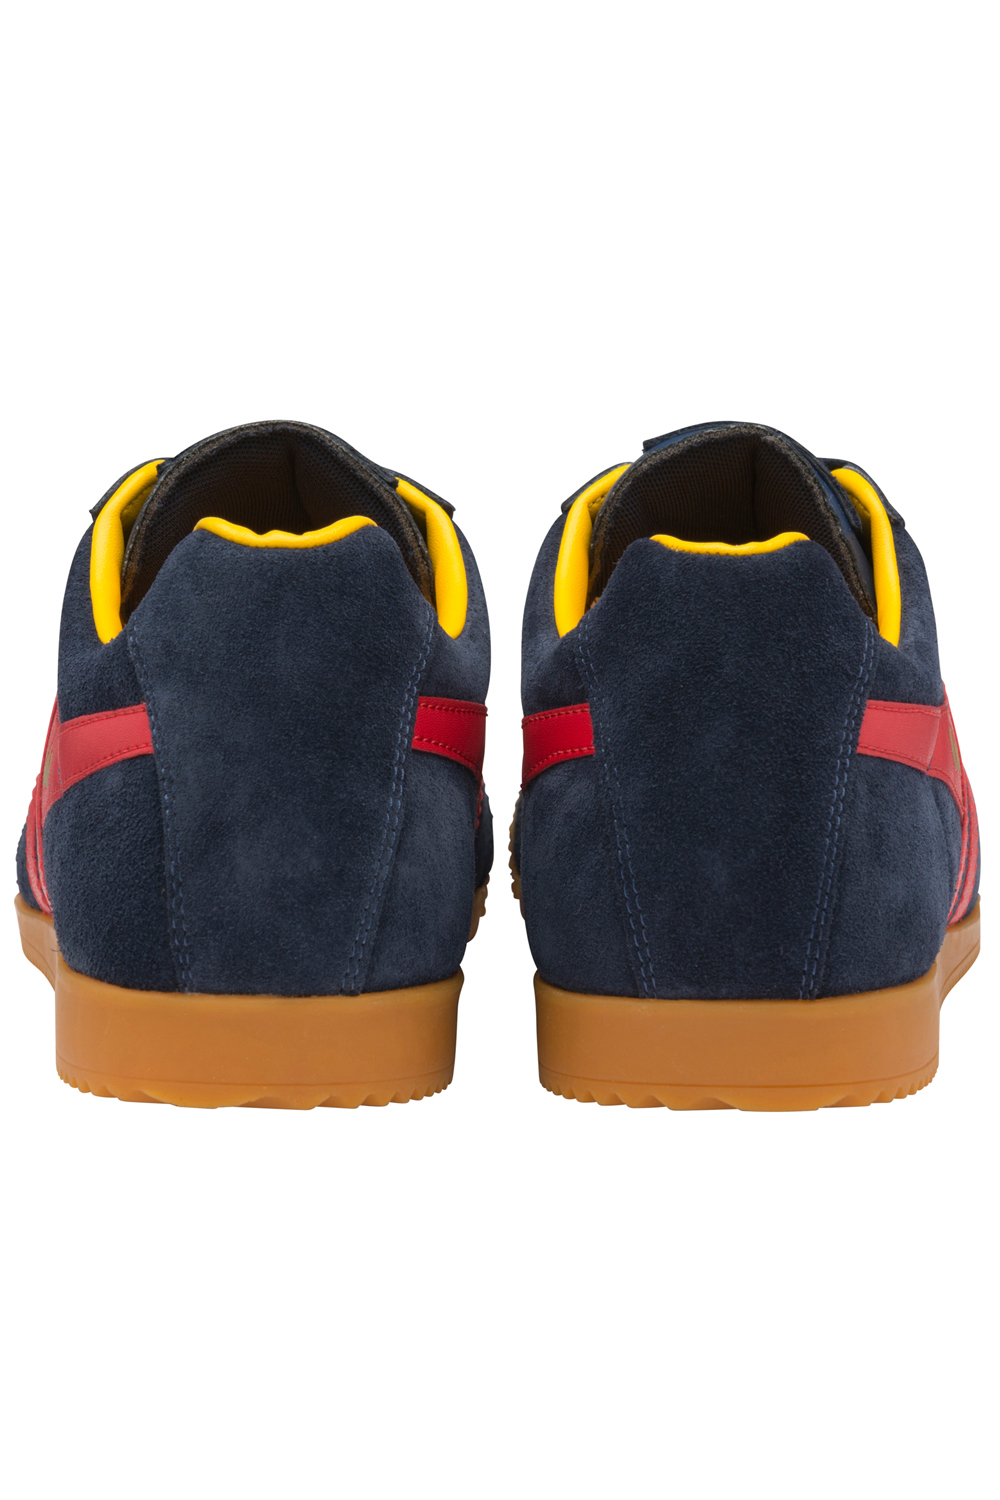 thumbnail 23 - Gola Harrier Suede Classic Vintage Lace-Up Sneakers Mens Trainers Low Top Shoes